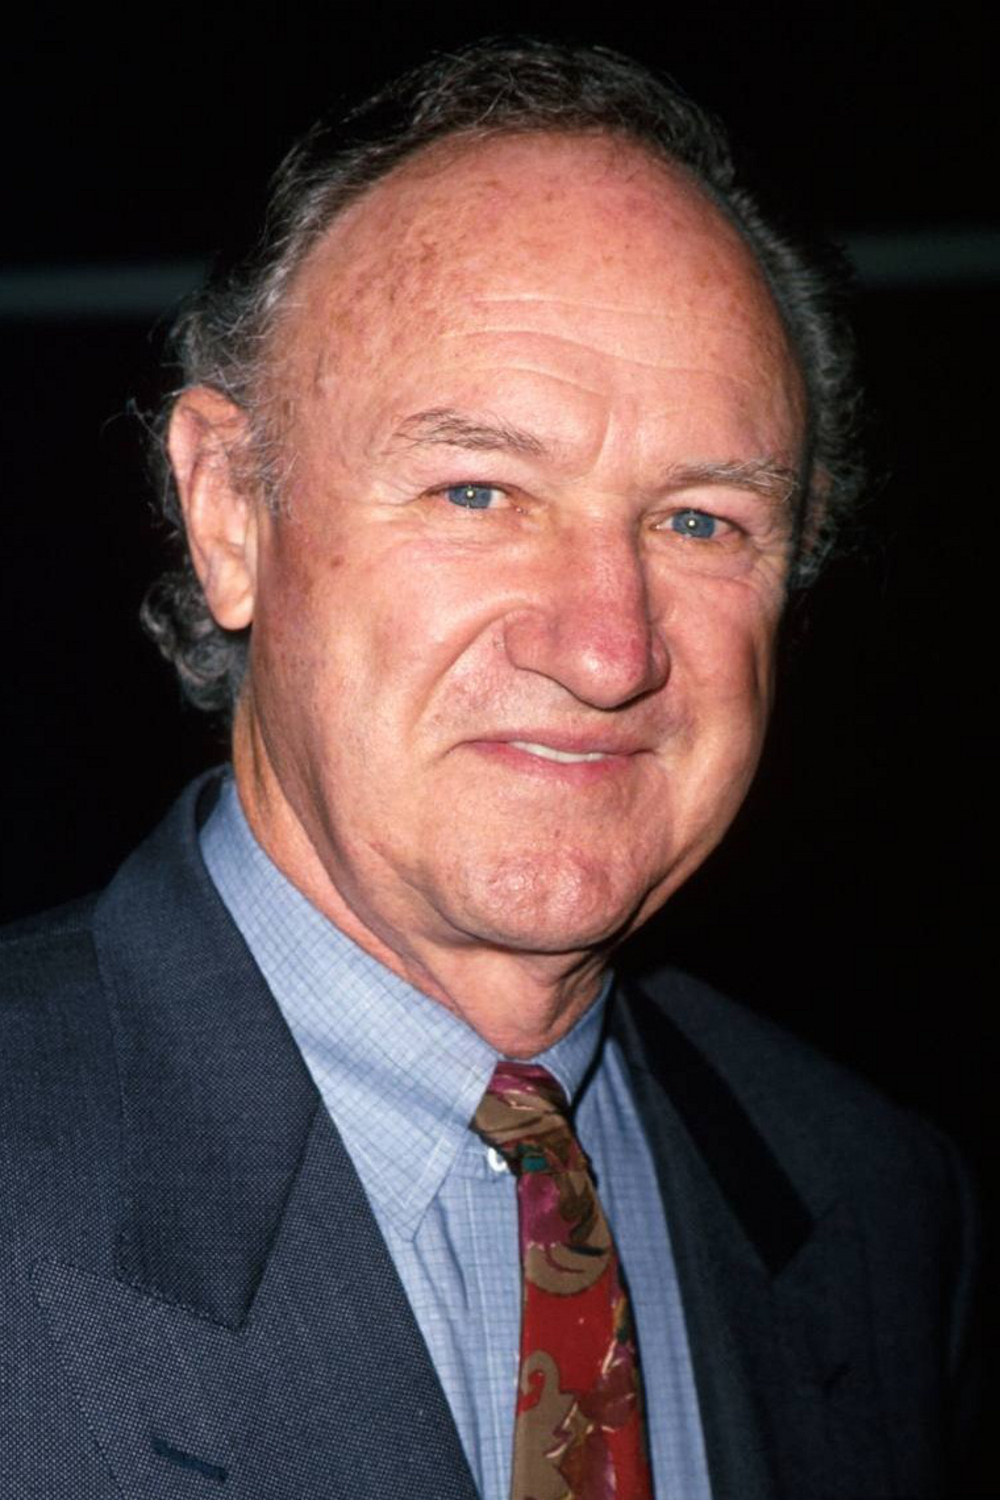 gene hackman wikigene hackman young, gene hackman filmleri, gene hackman western, gene hackman 2017, gene hackman quotes, gene hackman height, gene hackman wiki, gene hackman oscar, gene hackman and will smith movie, gene hackman and sharon stone, gene hackman imdb, gene hackman filmography, gene hackman target, gene hackman house, gene hackman 2016, gene hackman movies, gene hackman best movies, gene hackman basketball movie, gene hackman republican, gene hackman sinemalar